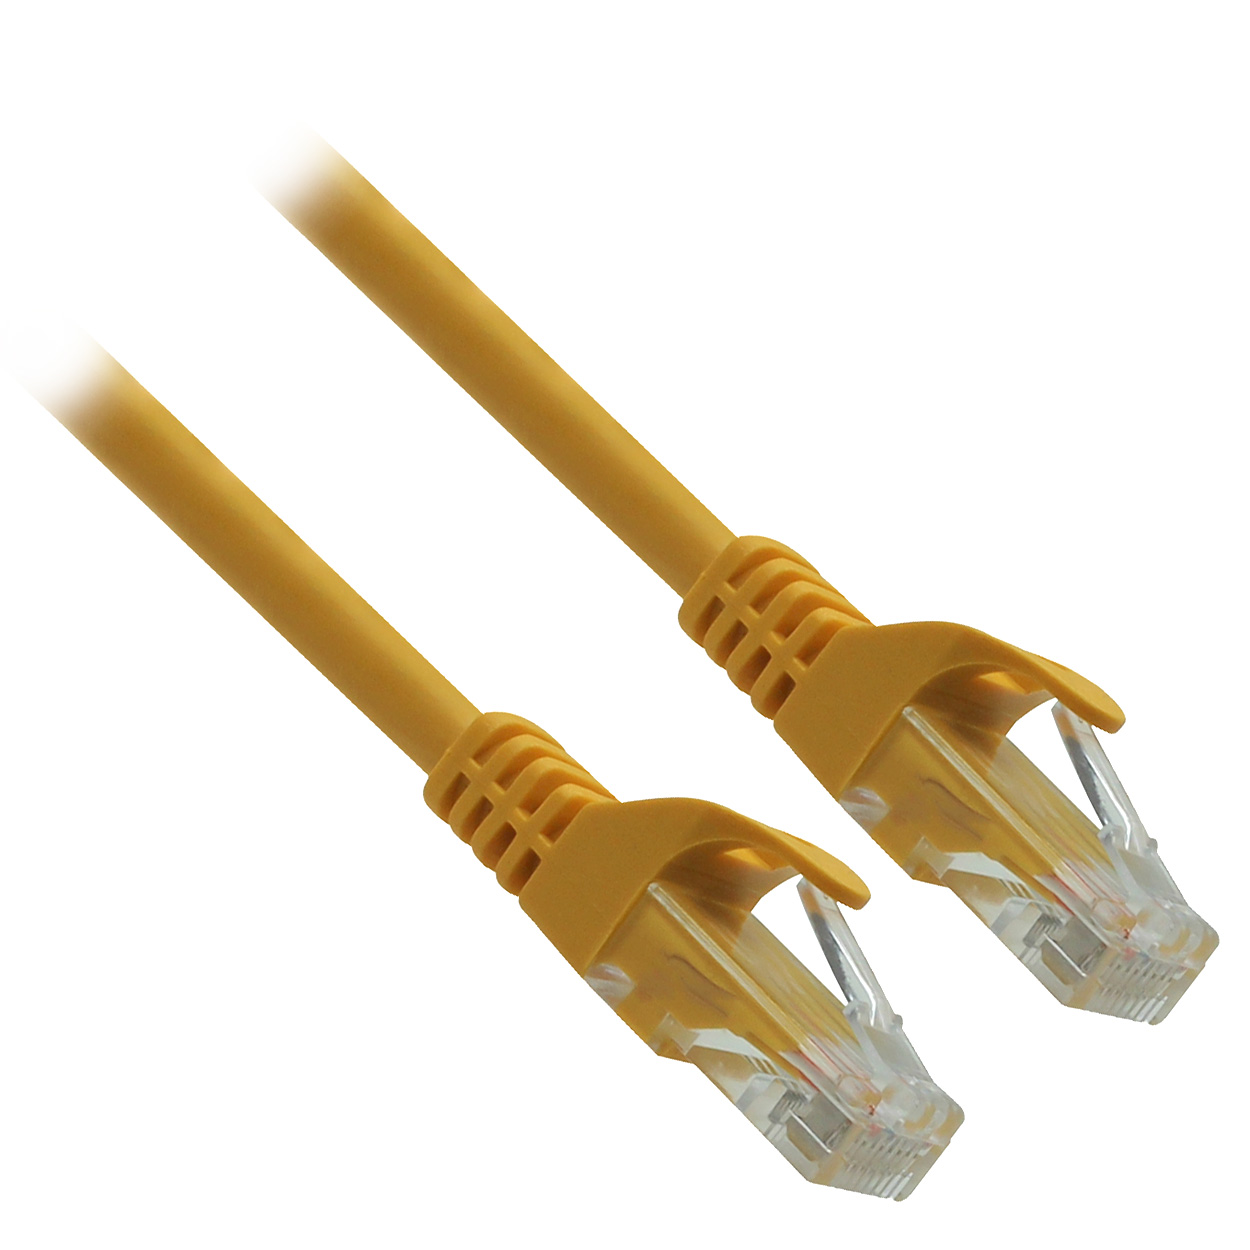 5ft 24AWG Molded UTP Cat6 Network Cable - Yellow